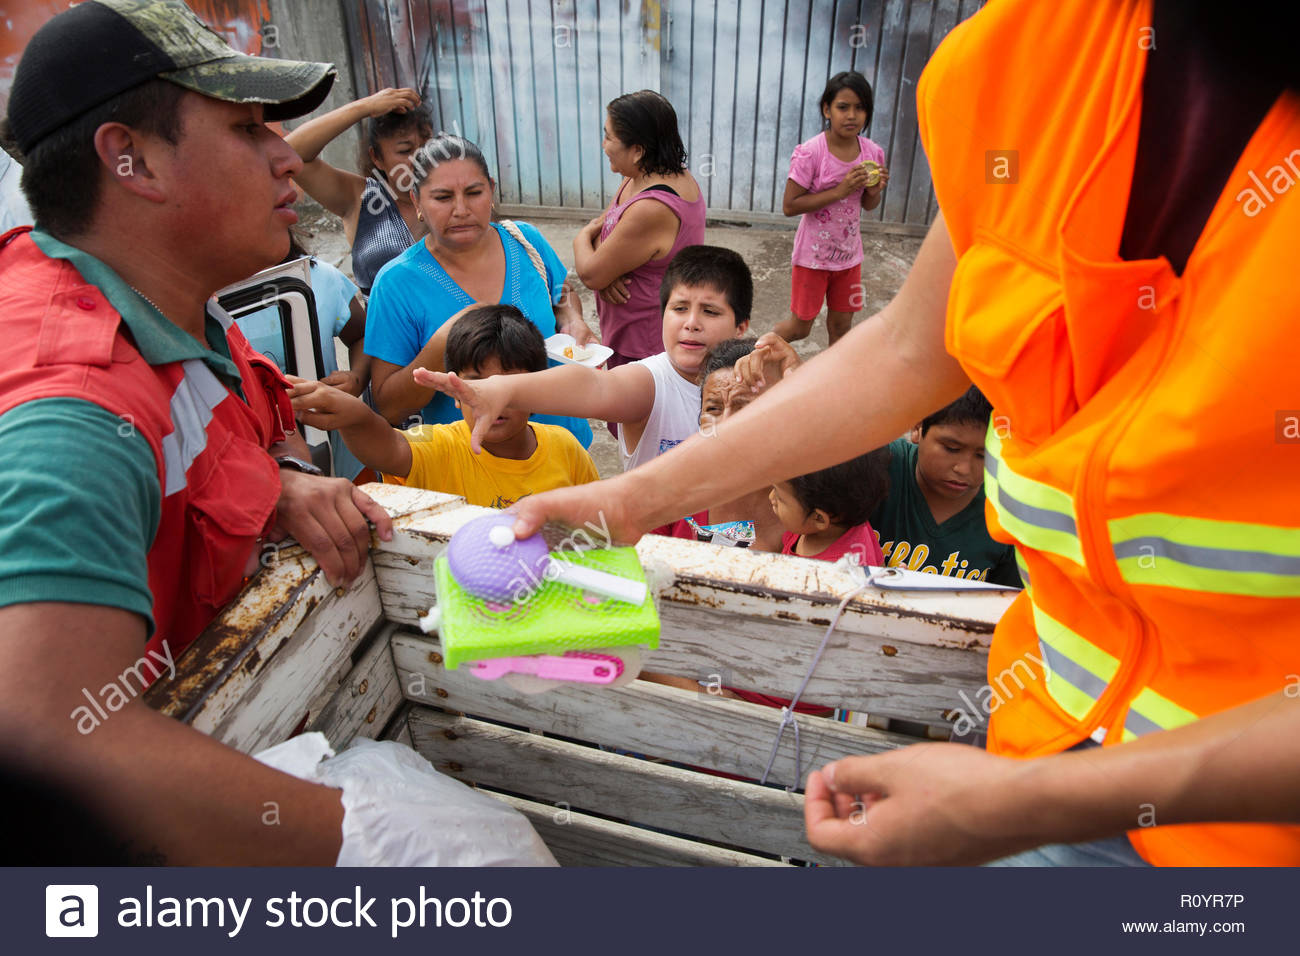 volunteers giving out food and supplies to children and residents of the small mexican town of Jojutla, after it was hit by a huge earthquake - Stock Image